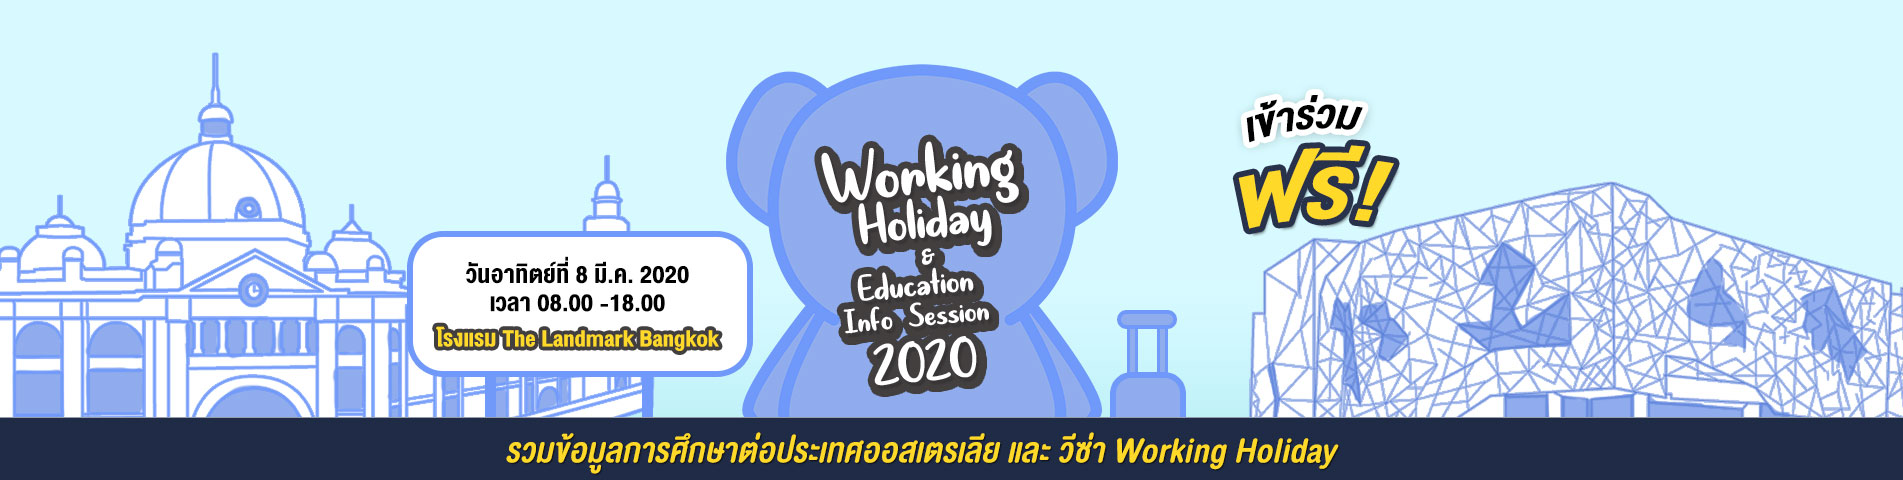 Working-Holiday-&-Education-Info-Session-2020